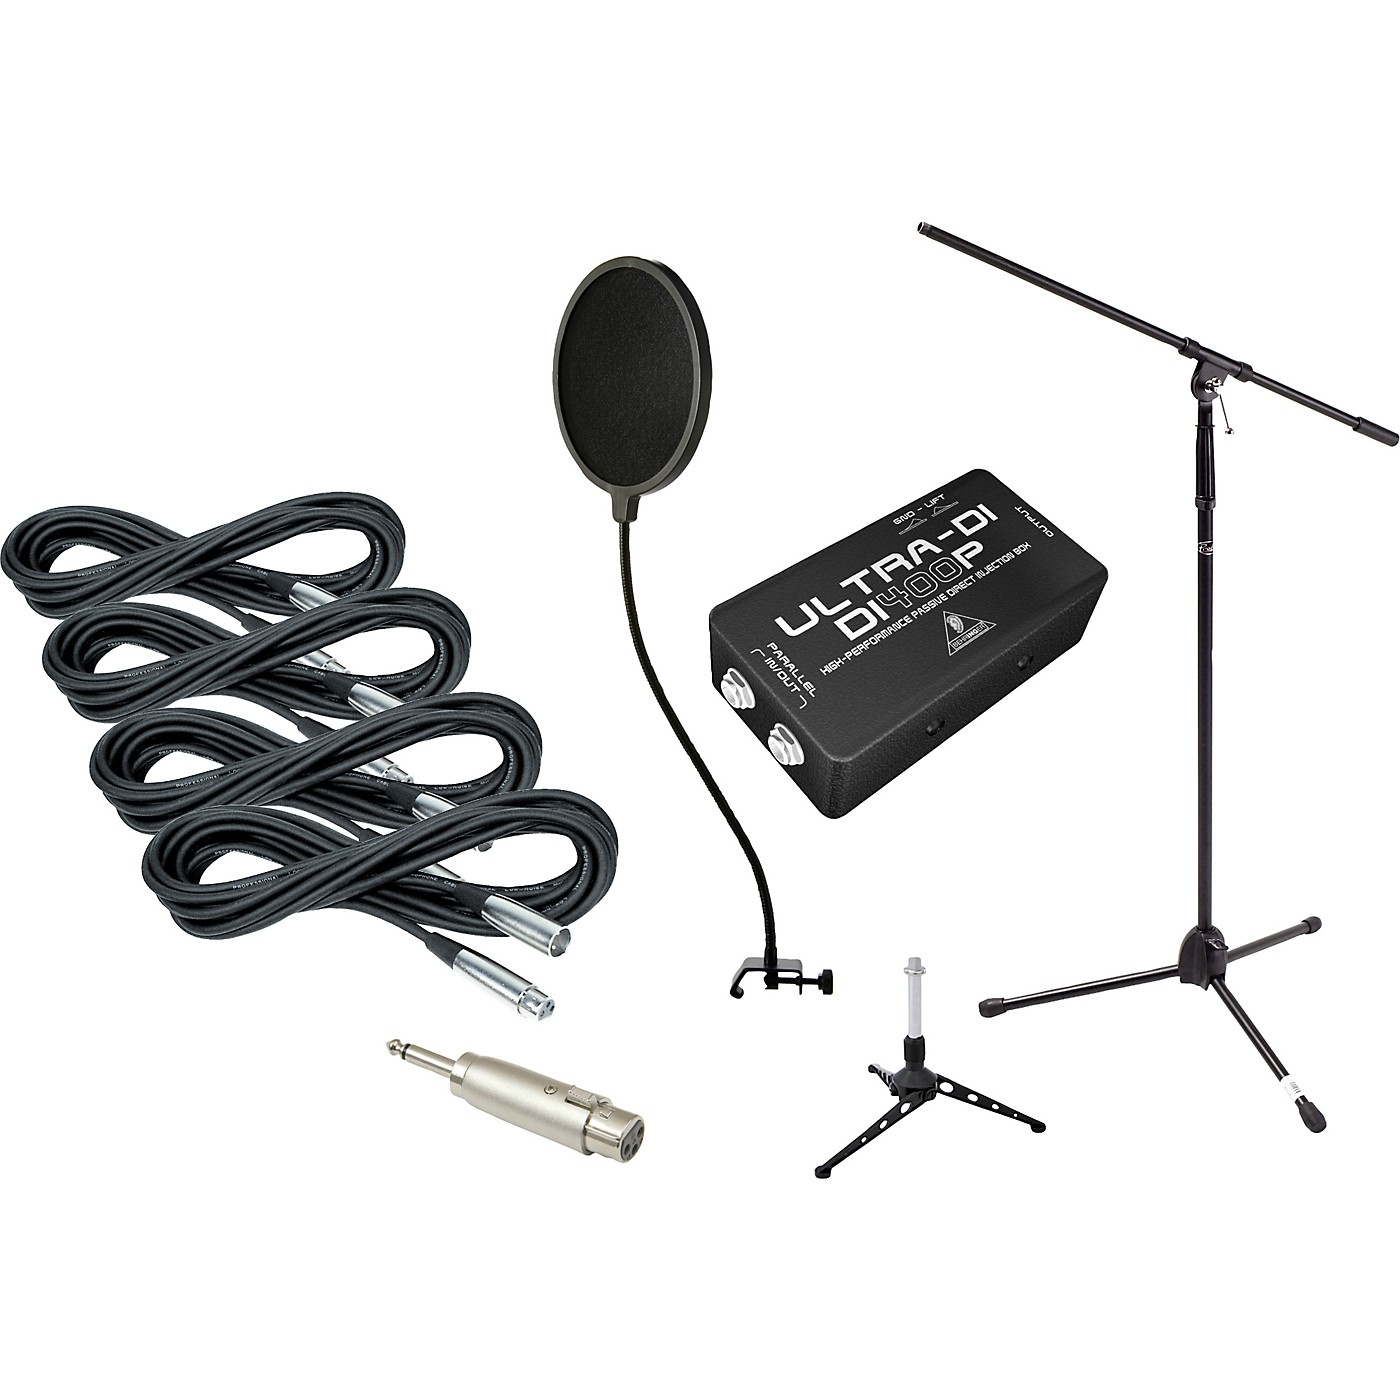 Gear One Gigging Pro Recording Accessories Pack thumbnail